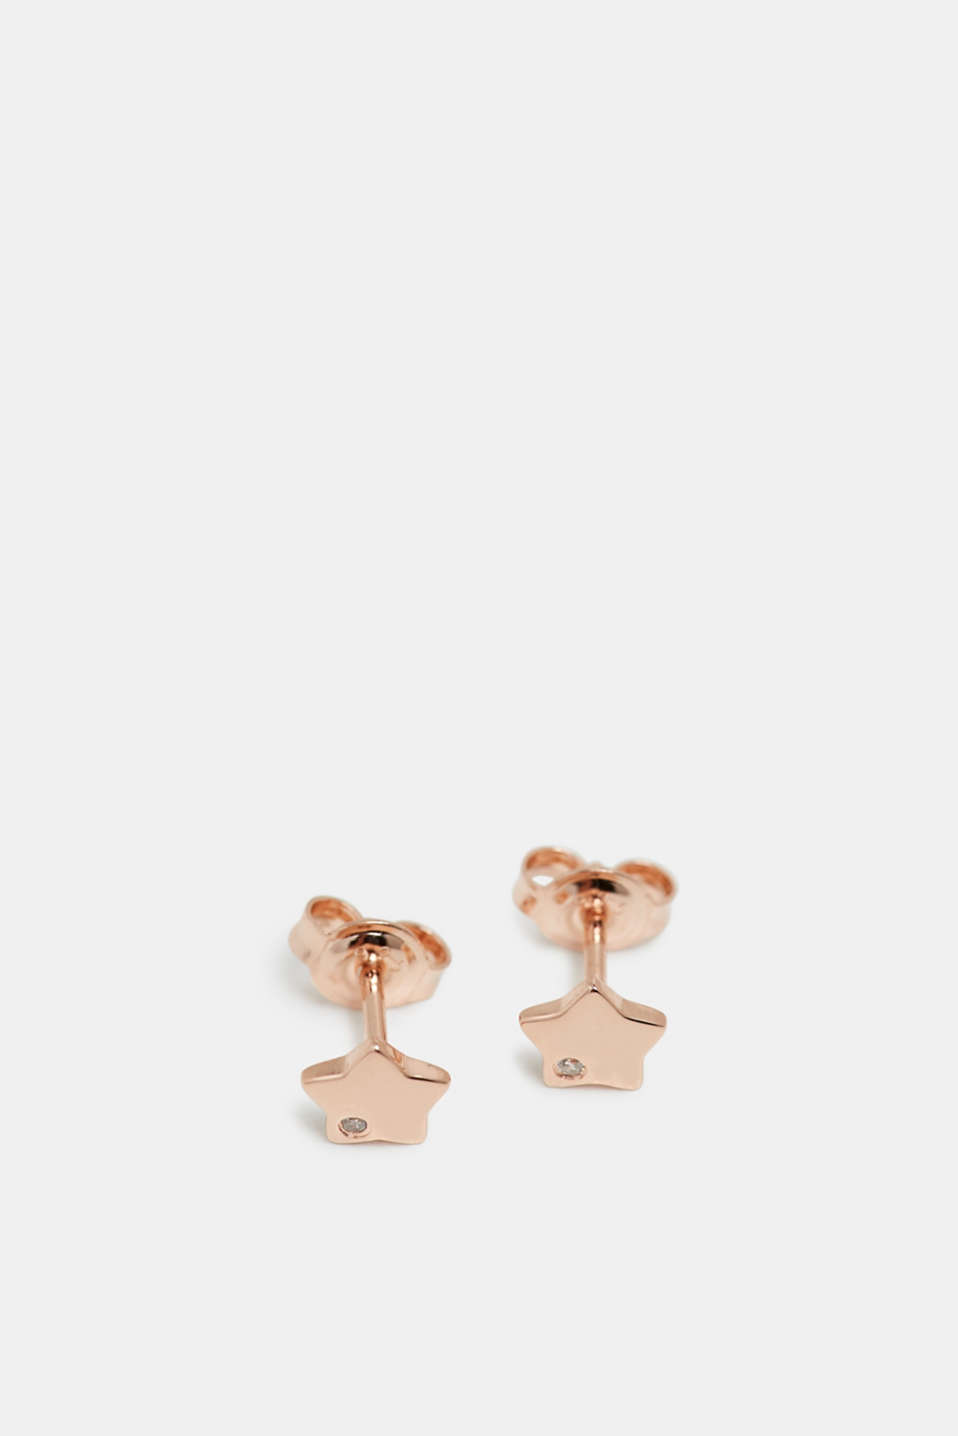 Star-shaped stud earrings in sterling silver, ROSEGOLD, detail image number 1